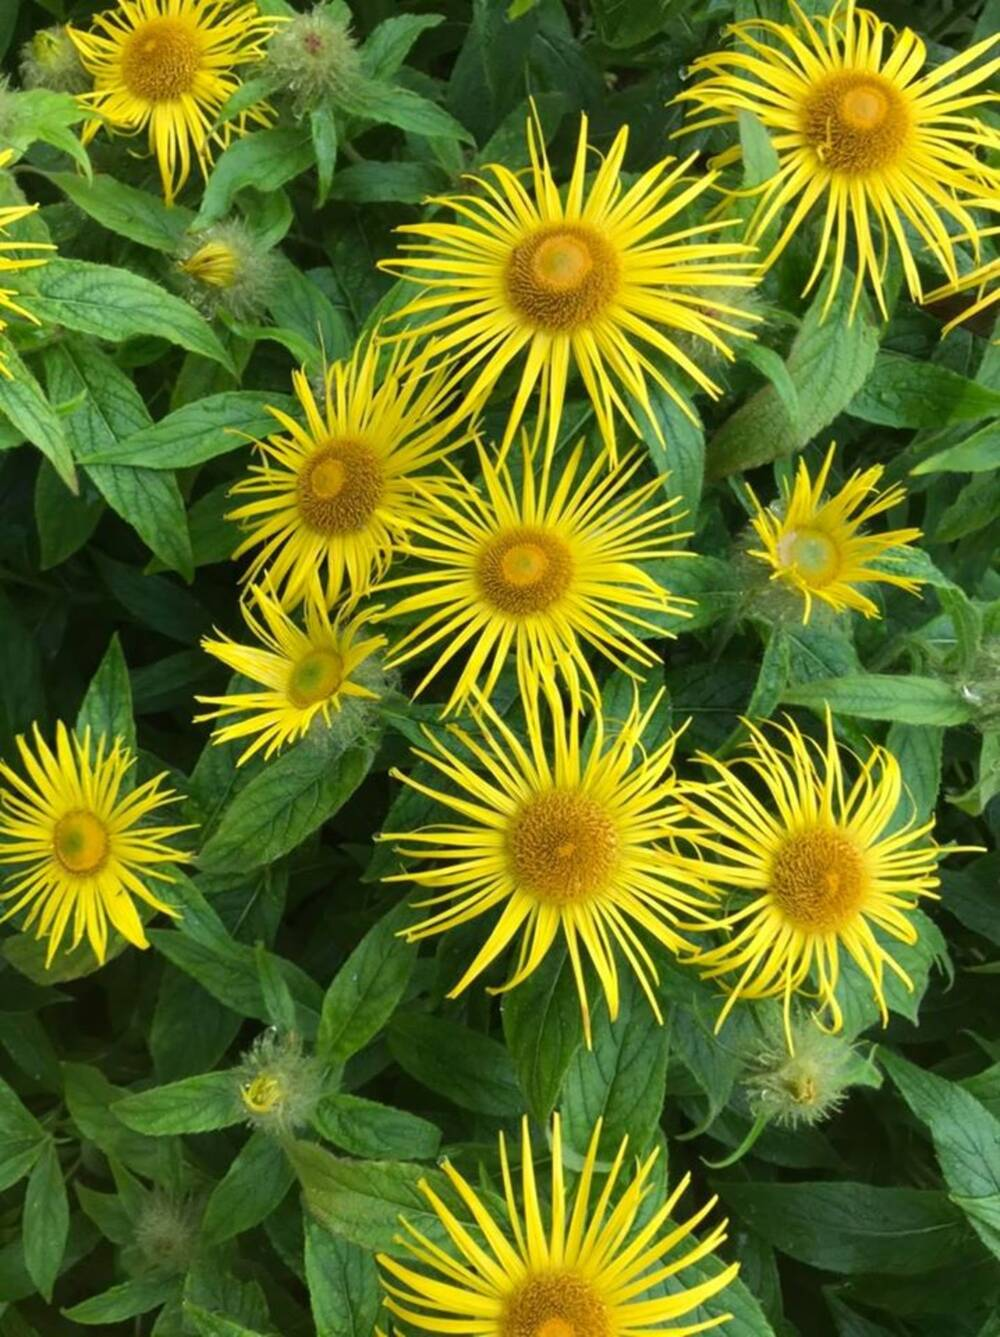 Close-up of the yellow daisy-like flowers of Inula hookeri.